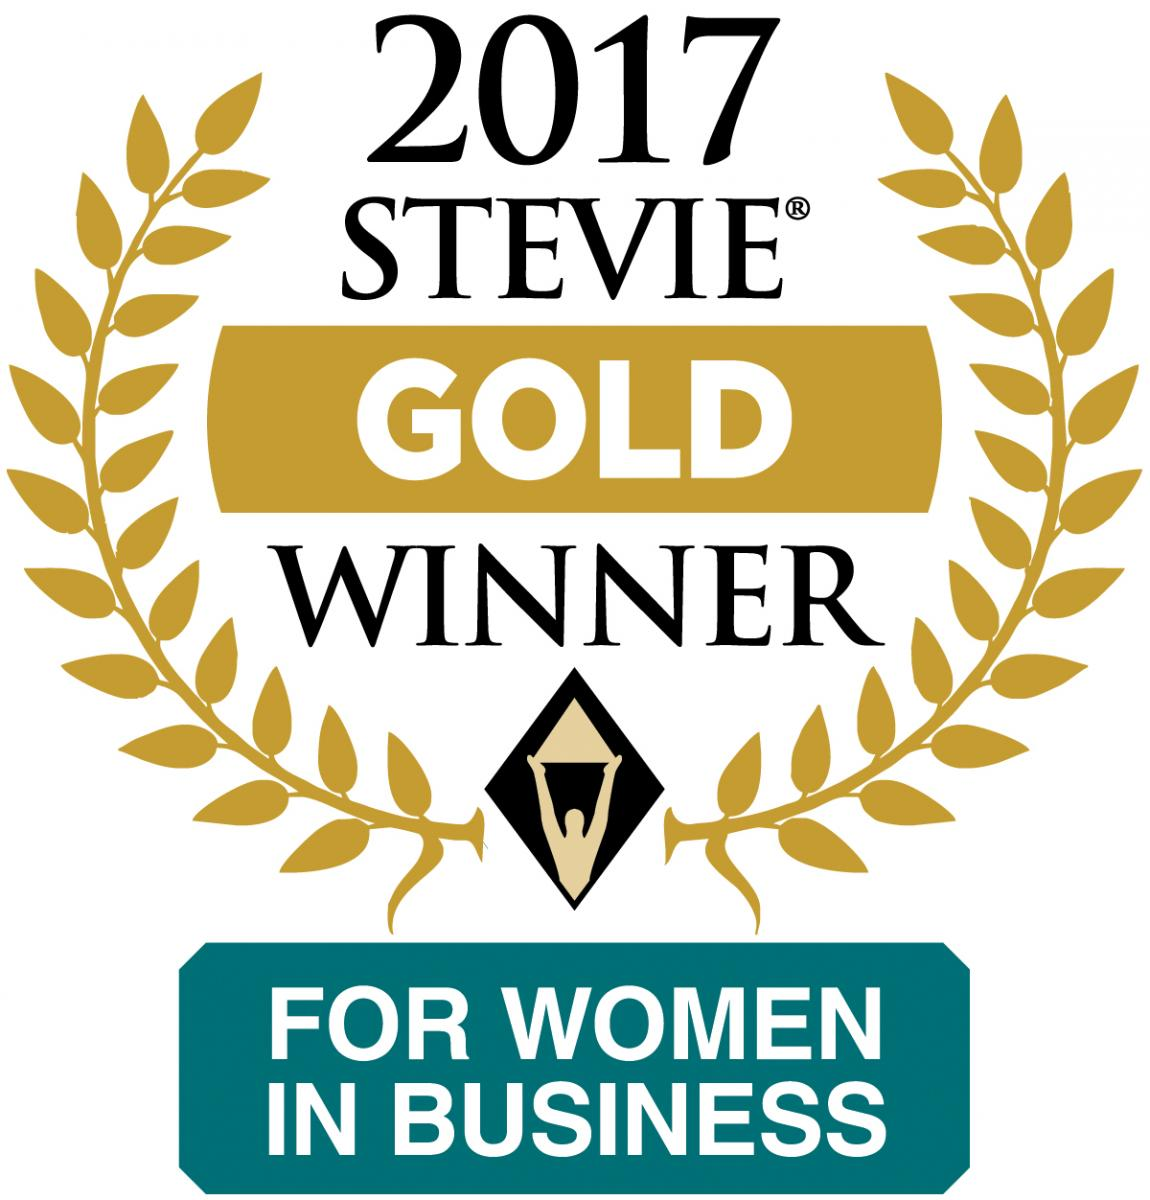 2017 Stevie Gold Winner for Women in Business